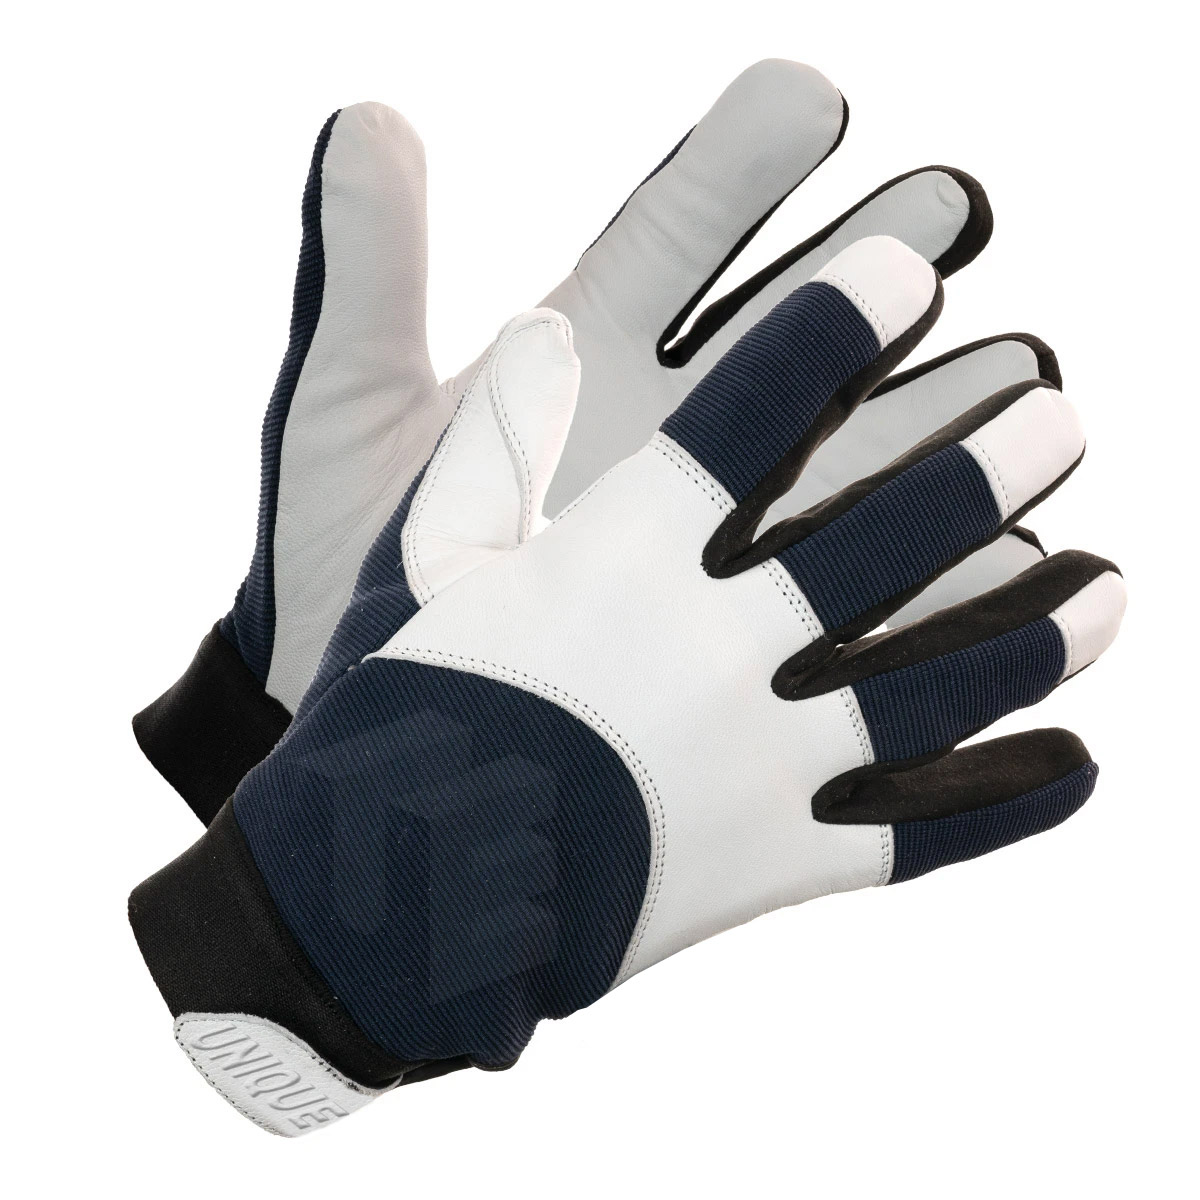 Natural Goat Skin Leather Assembly Glove With Spandex Back,